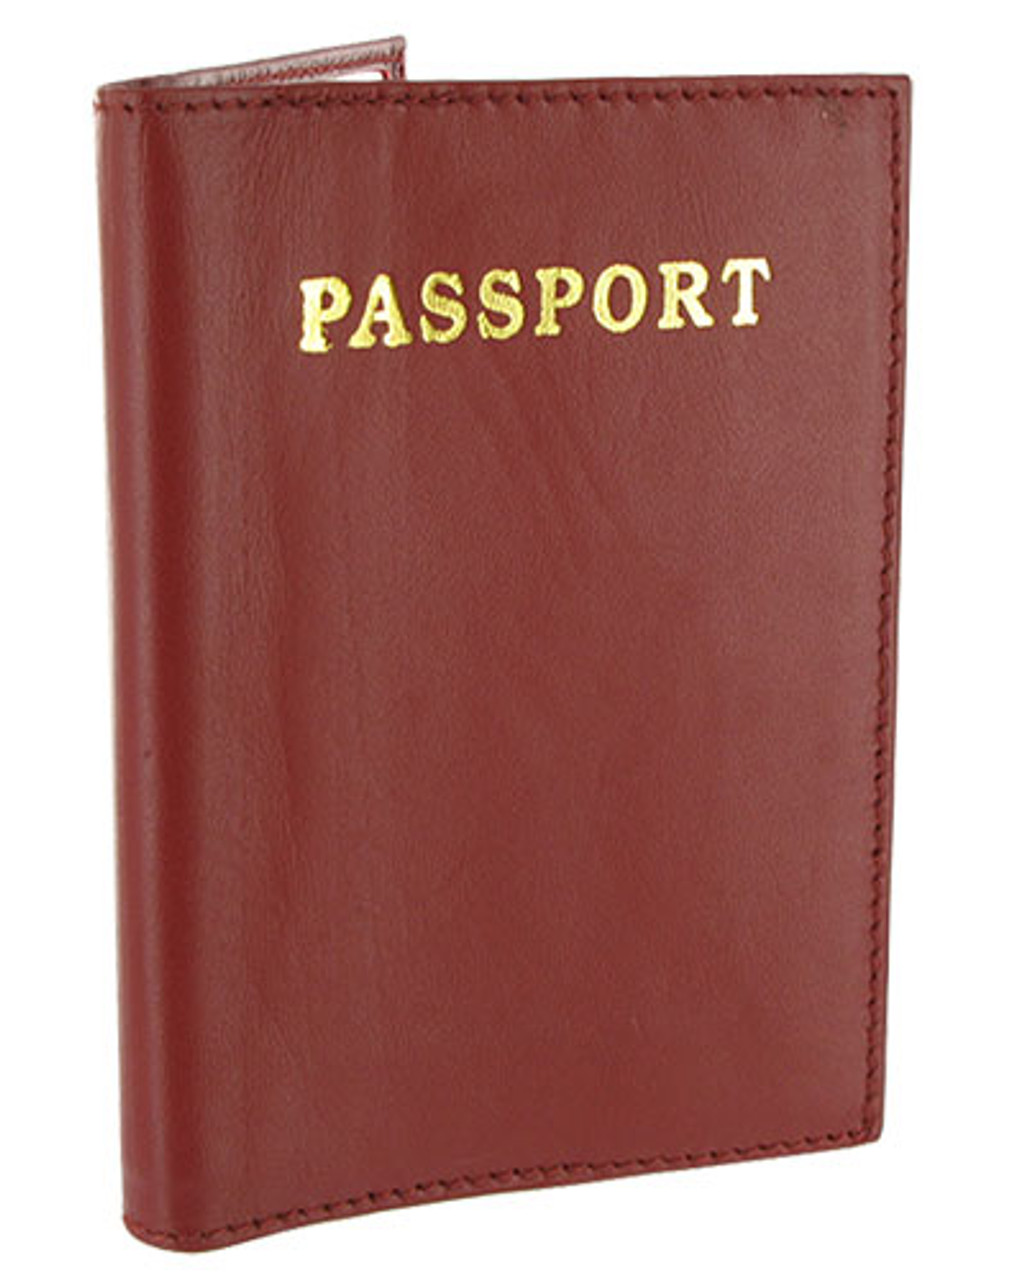 Burgundy Leather Cover Passport Holder Travel 5.5 x 3.75 inch Wallet